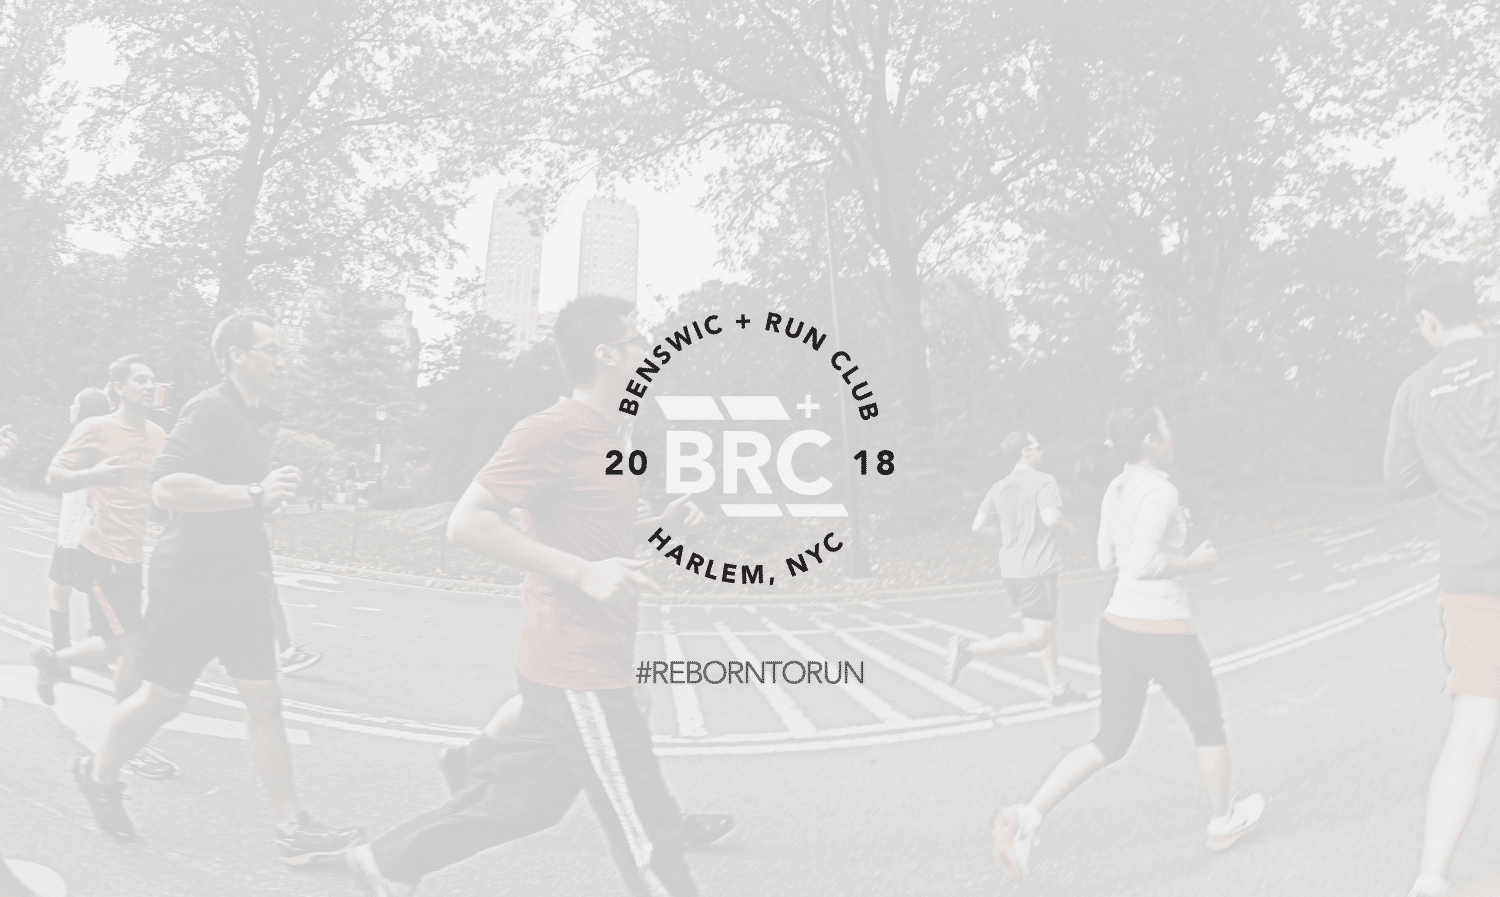 Benswic + Run Club